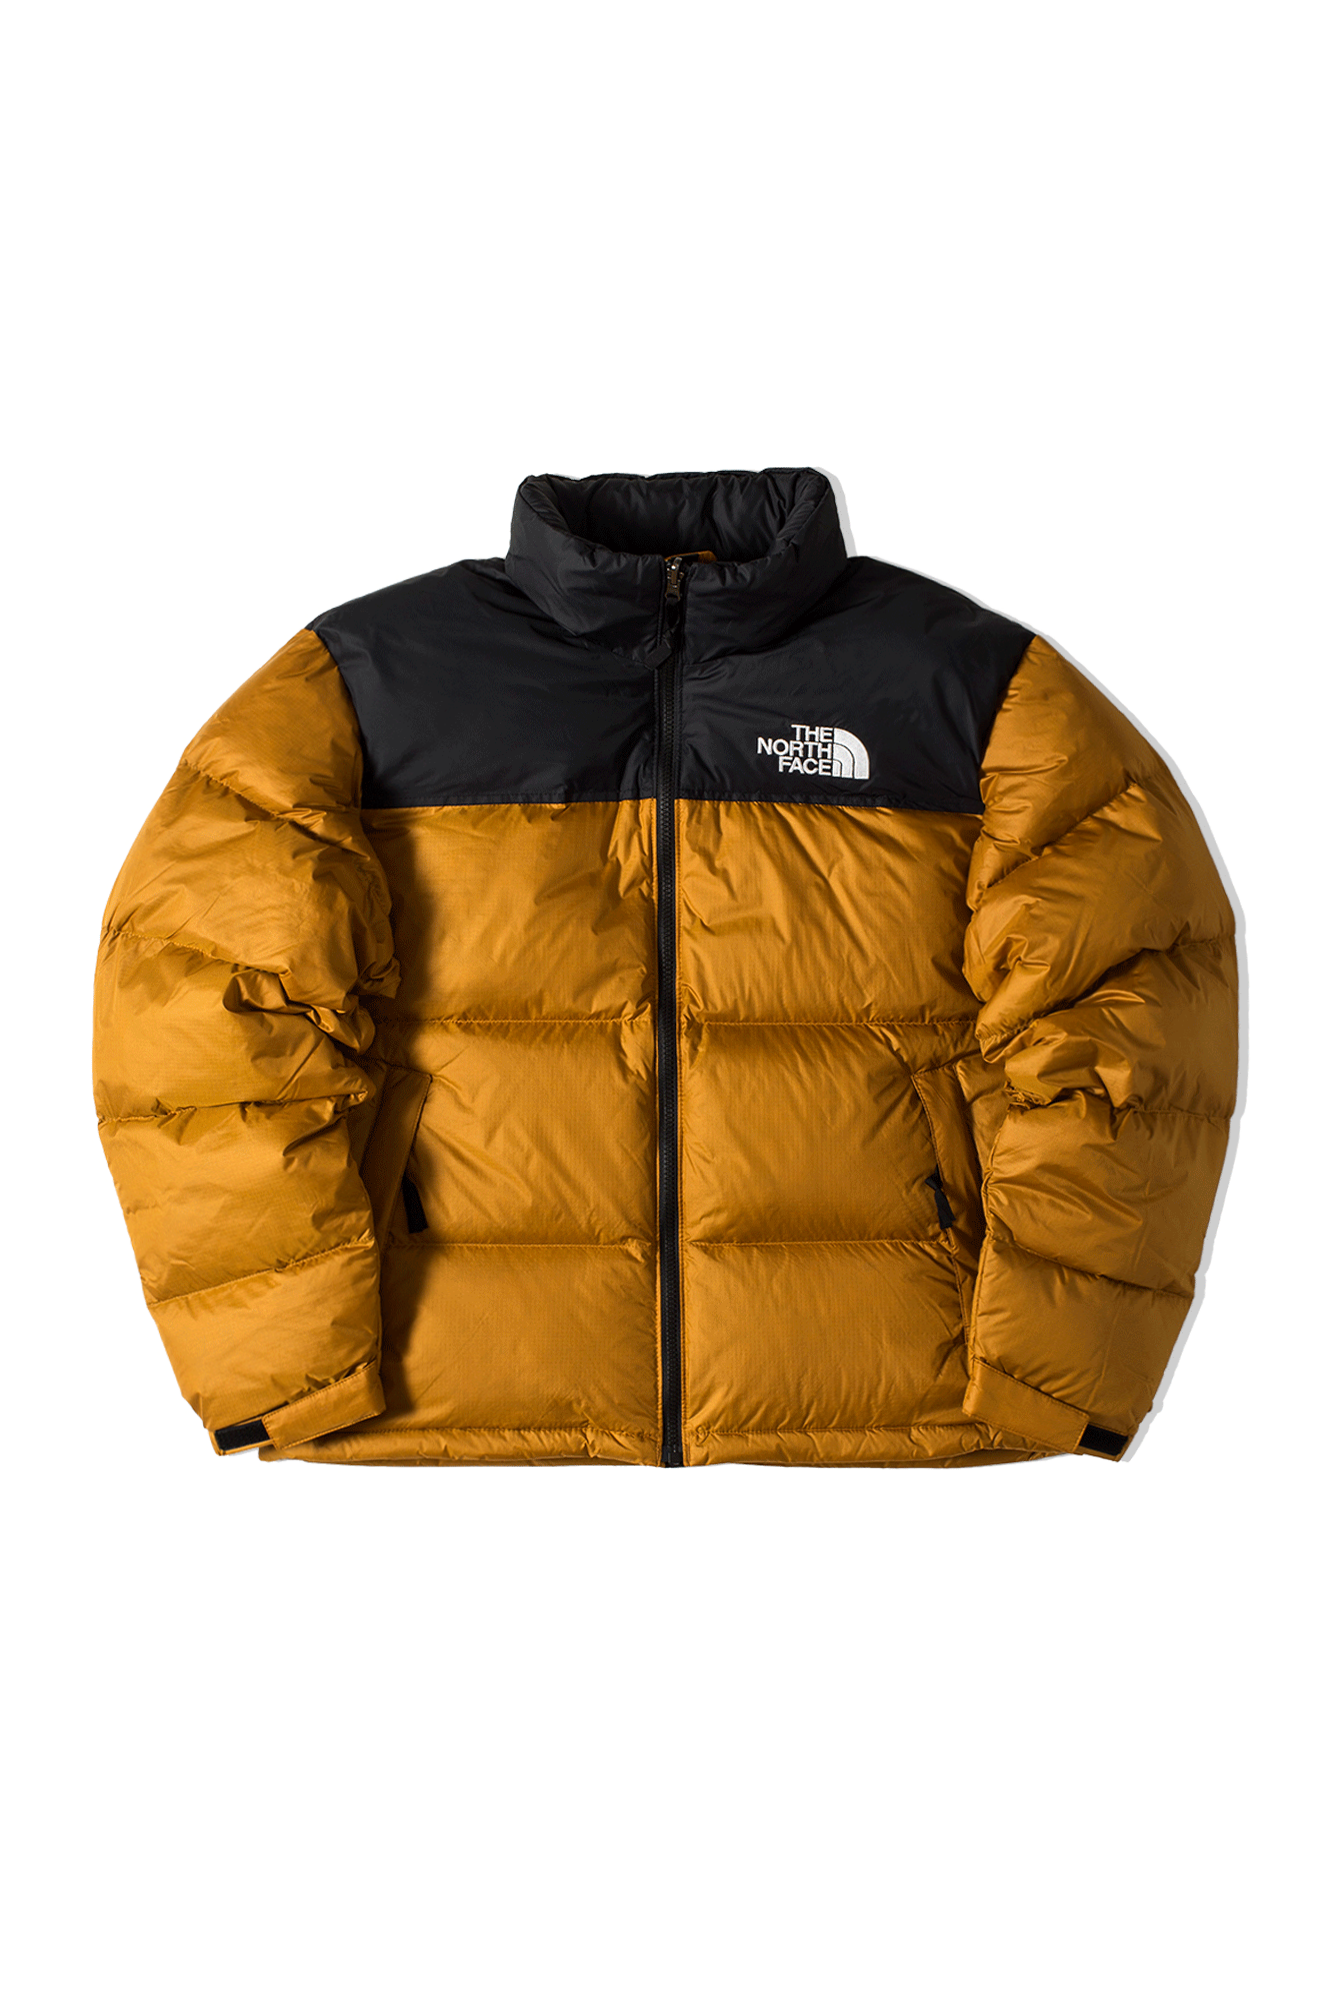 The North Face Down jackets M 1996 Retro Nuptse Down Jacket Brown NF0A3C8D#000#VC71#XS - One Block Down